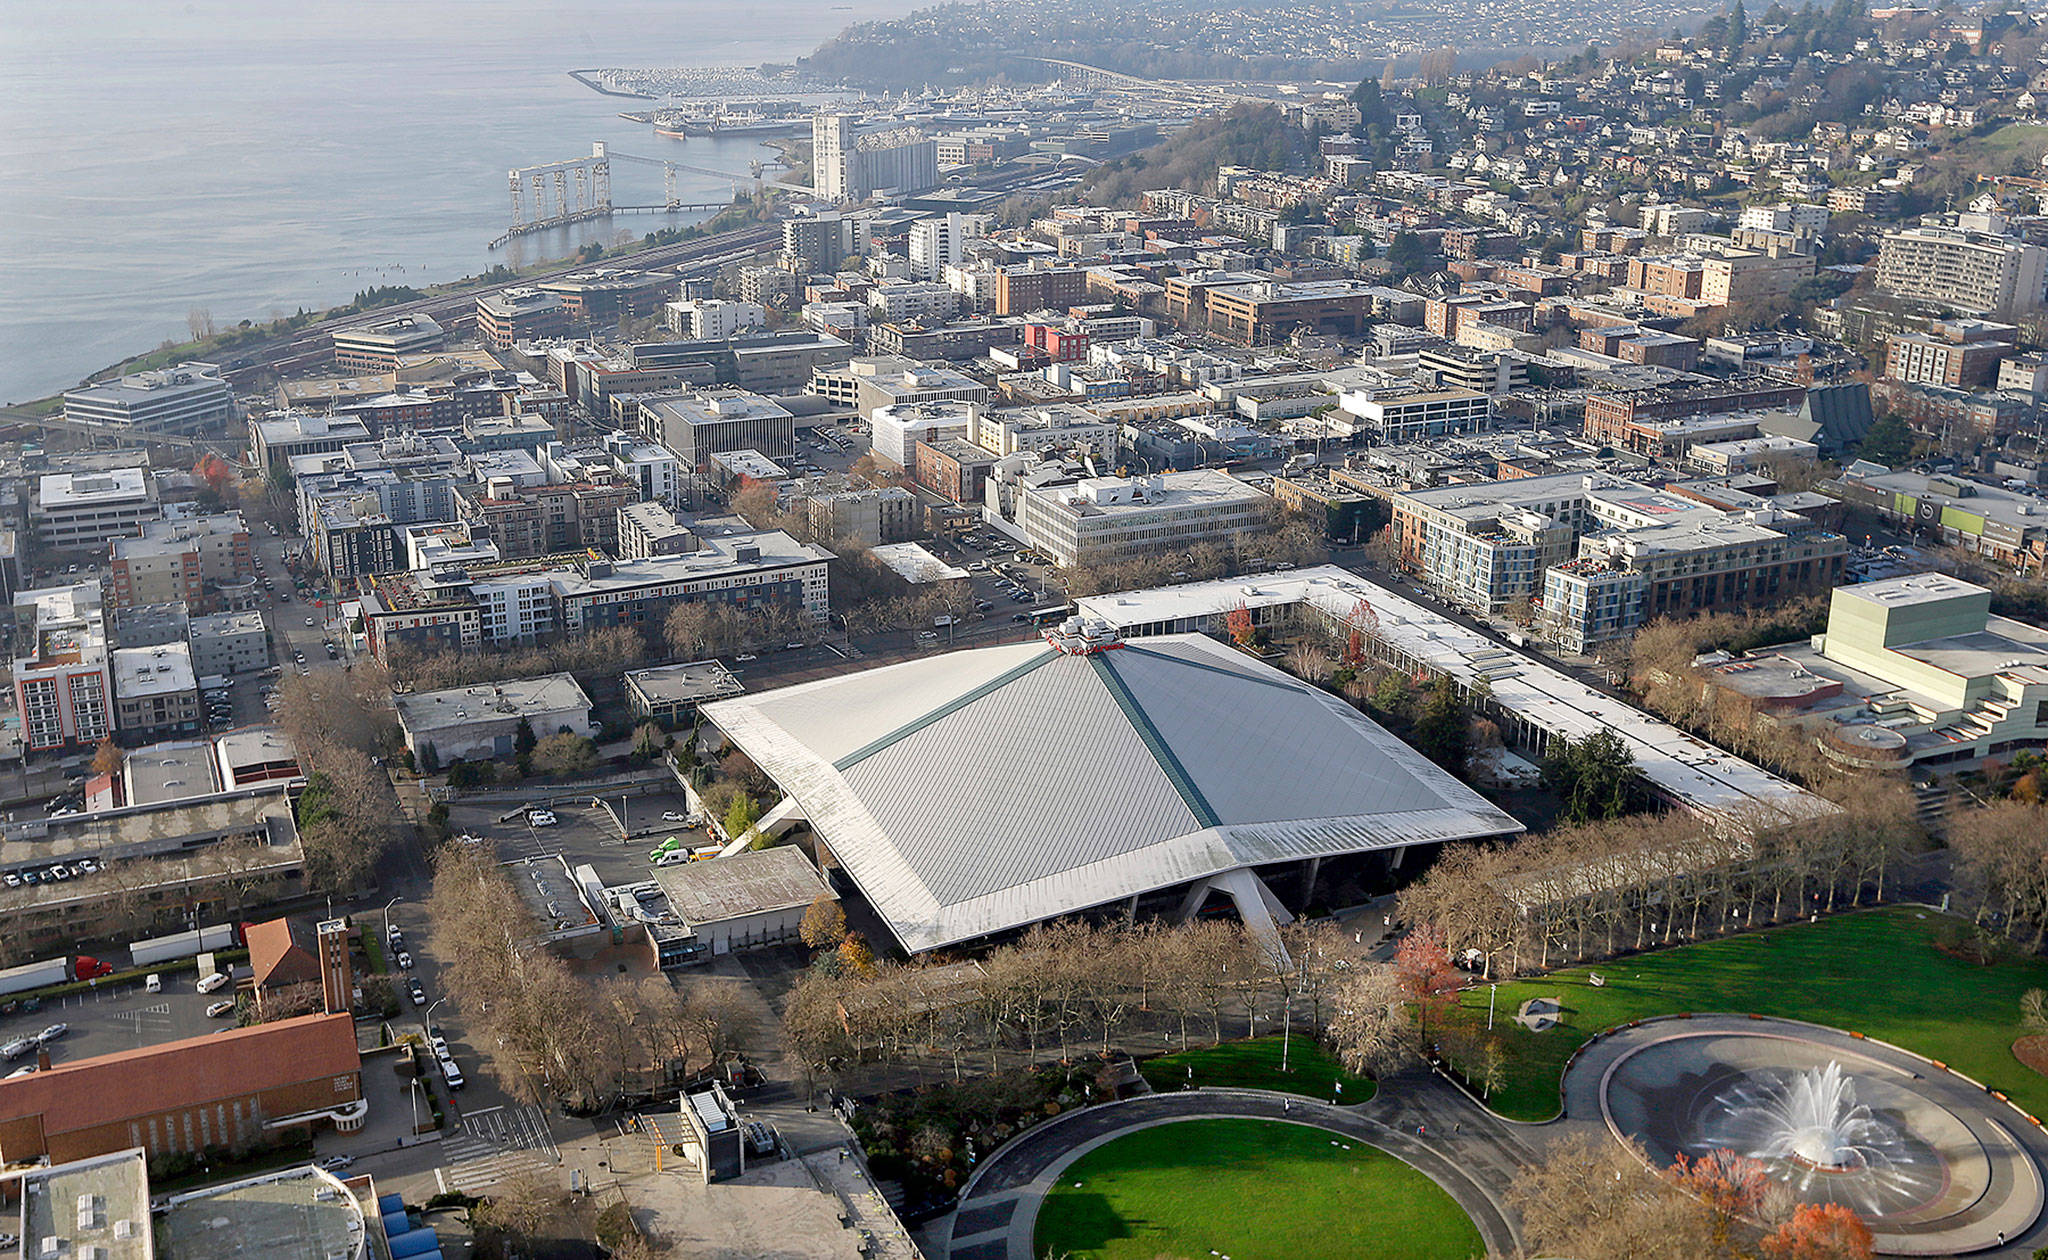 The iconic, sloped roof of KeyArena, the sports and entertainment venue at Seattle Center. (AP Photo/Elaine Thompson)